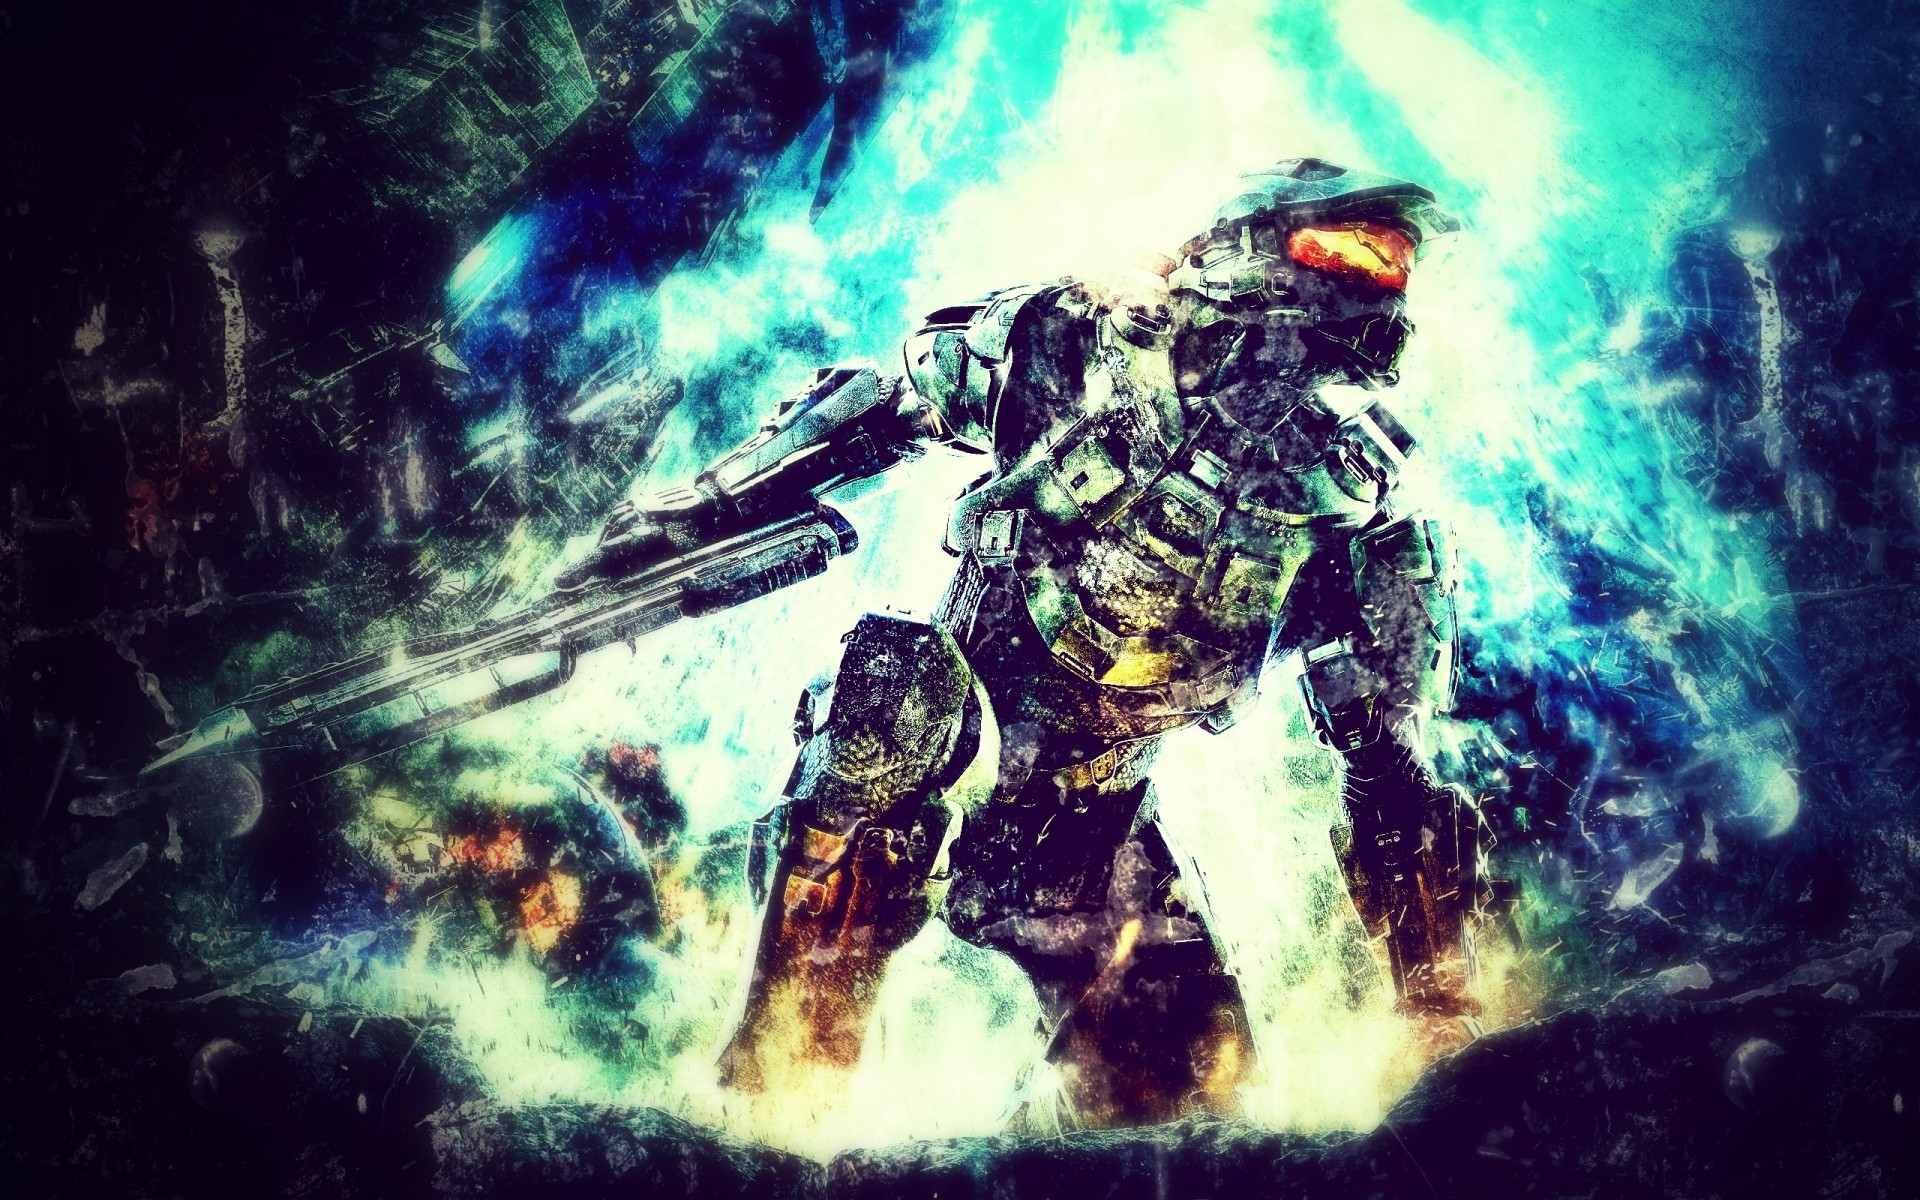 Halo 4 Free Wallpapers